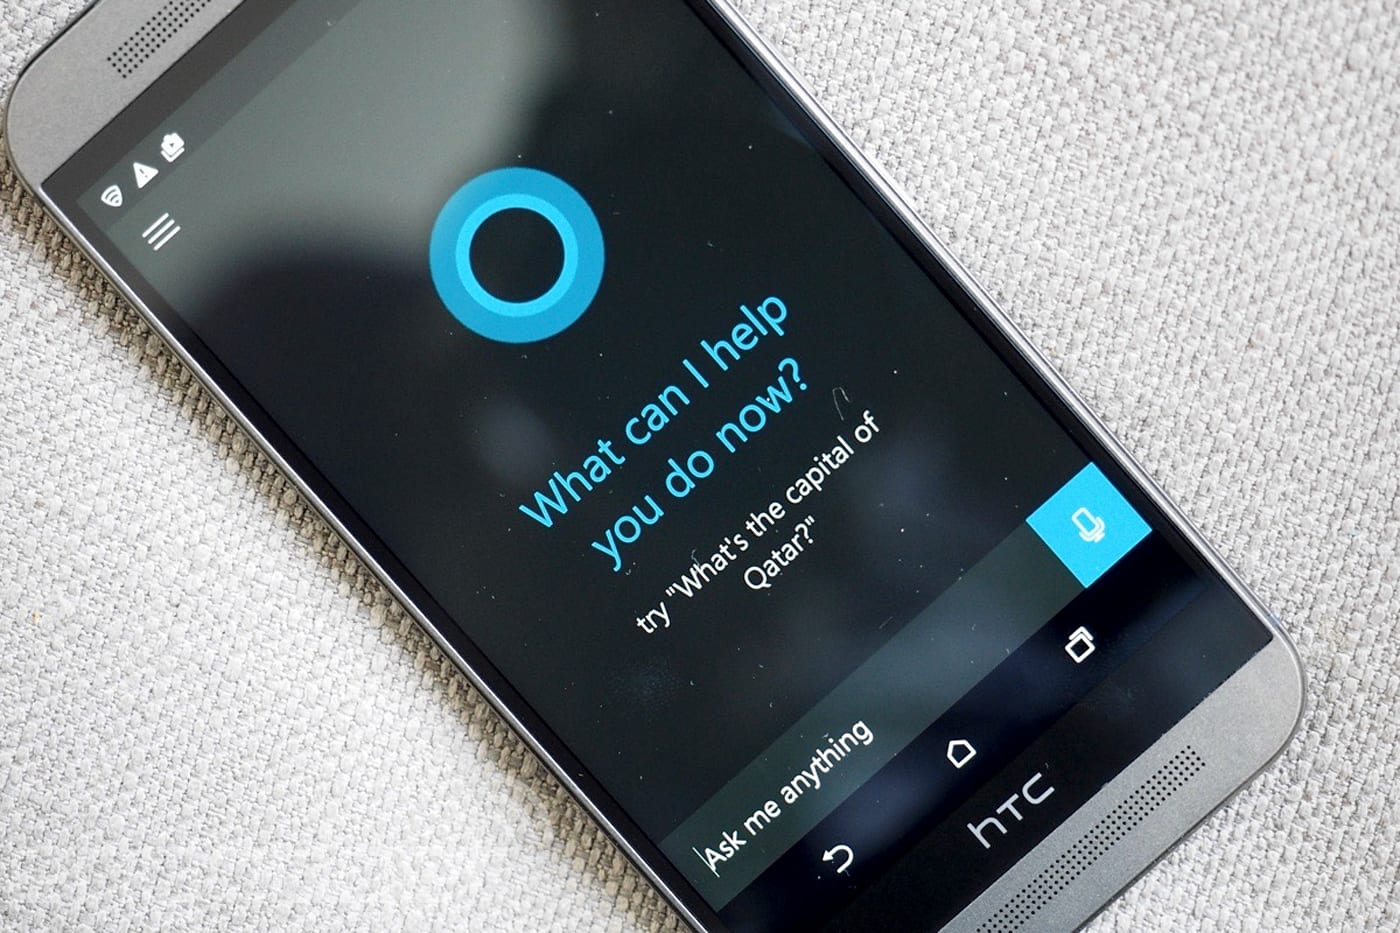 Microsoft Band 2 gets Cortana support for Android users